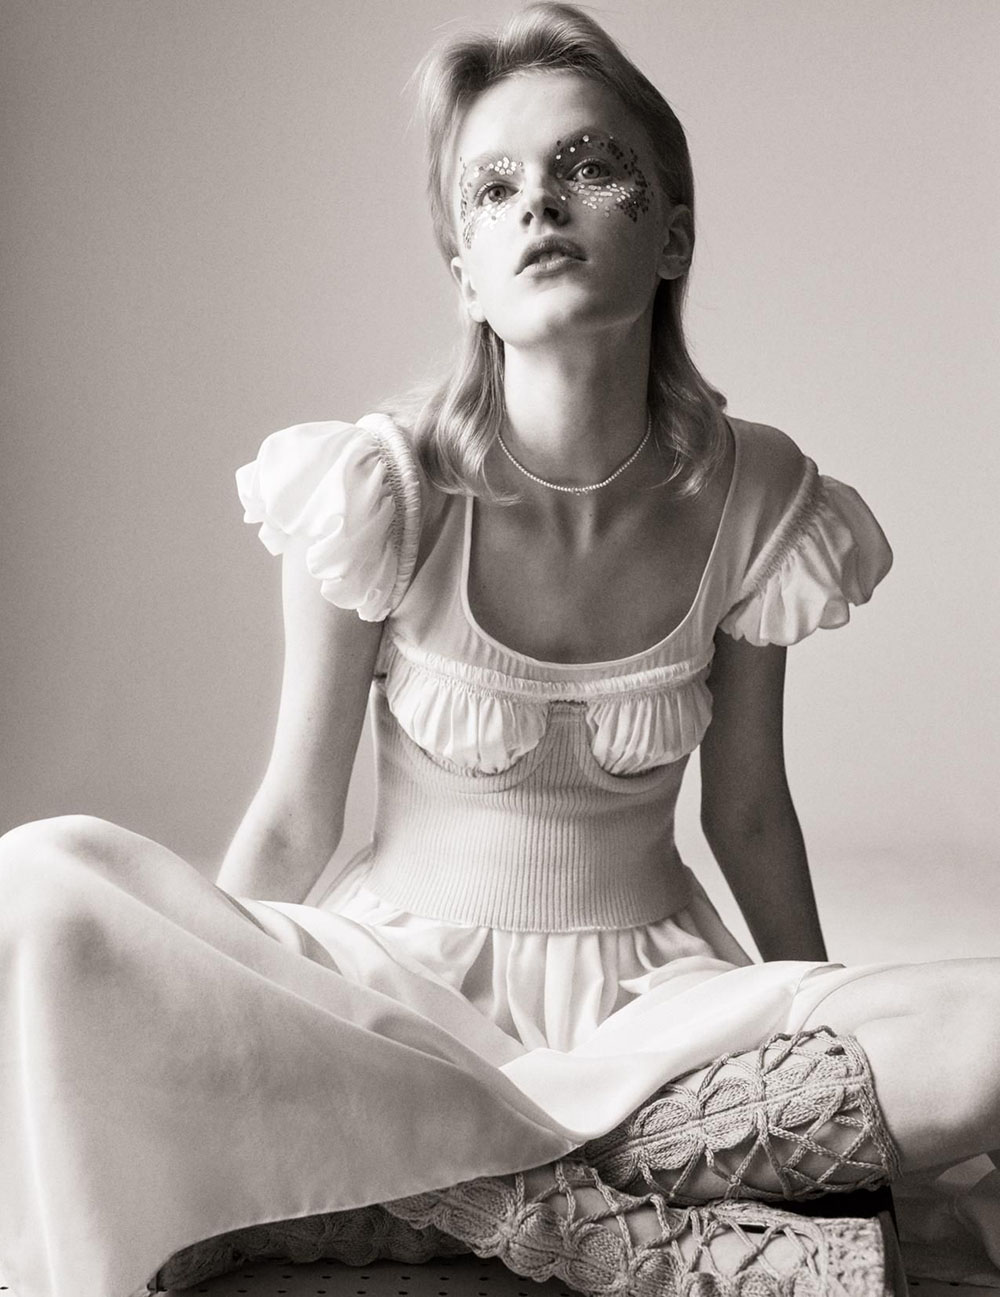 ''Romantic Notions'' by Josh Olins for WSJ. Magazine February 2020